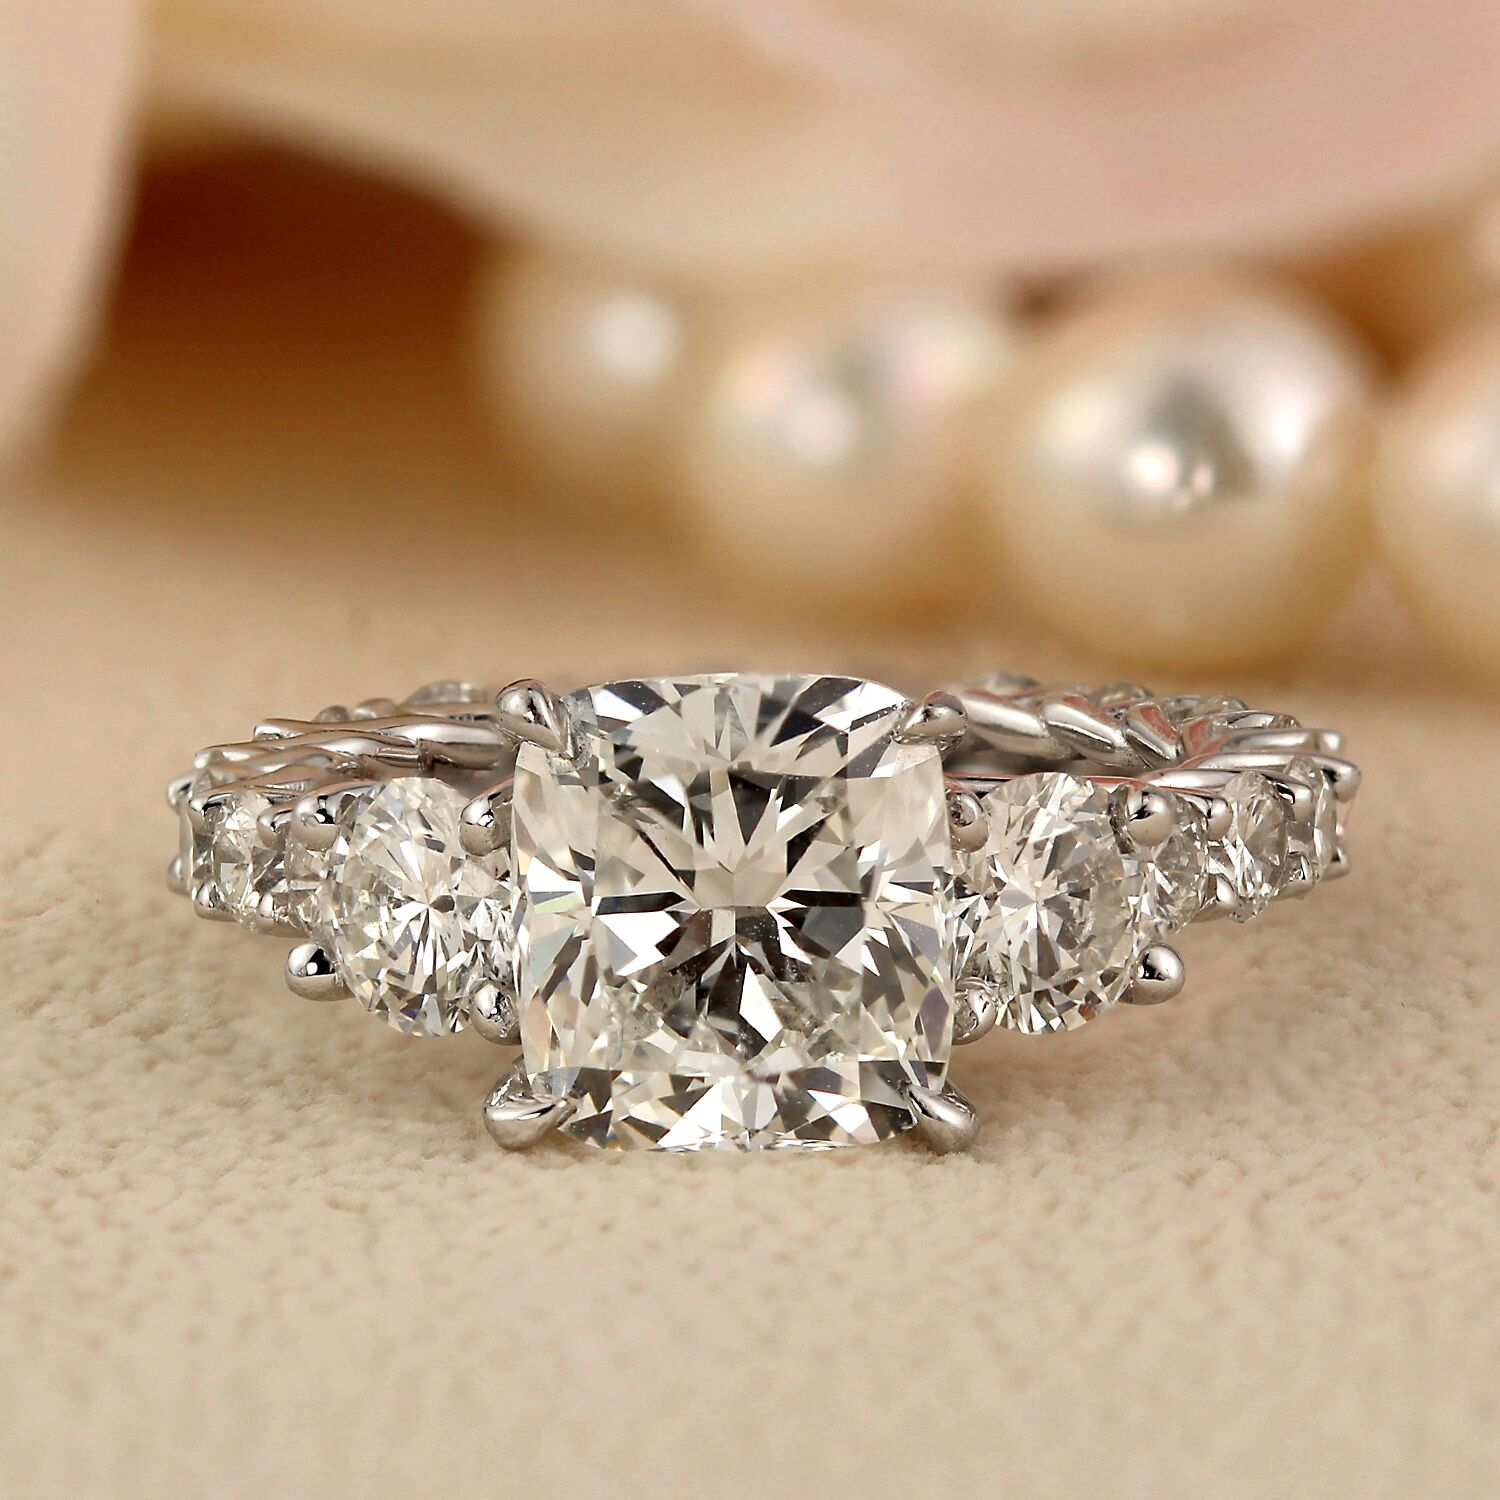 Buying a Cushion Cut Diamond? Top Tips You Must Know